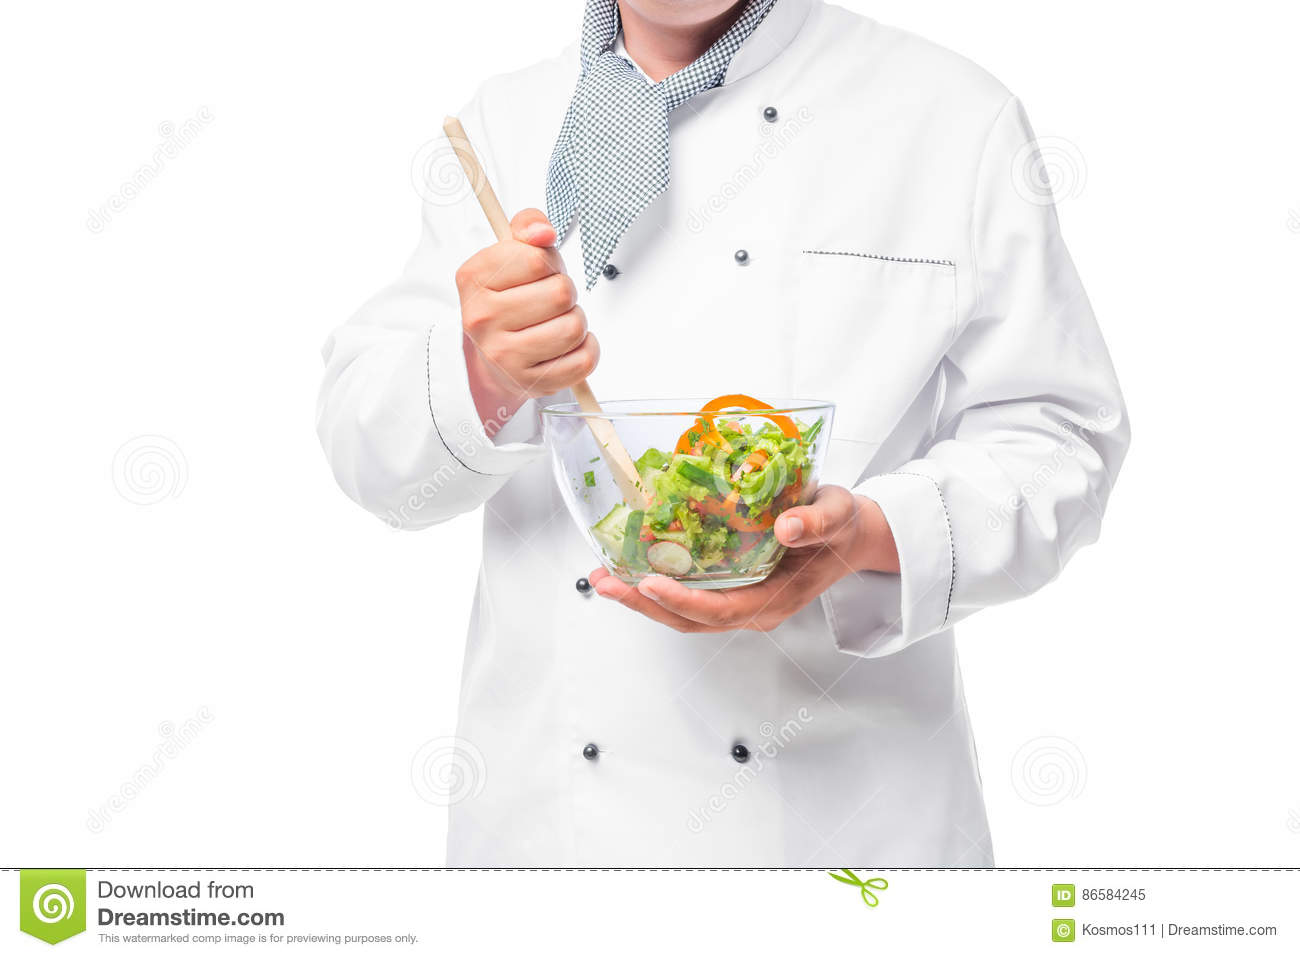 Bowl with vegetable salad and a wooden spoon to stir in the hand